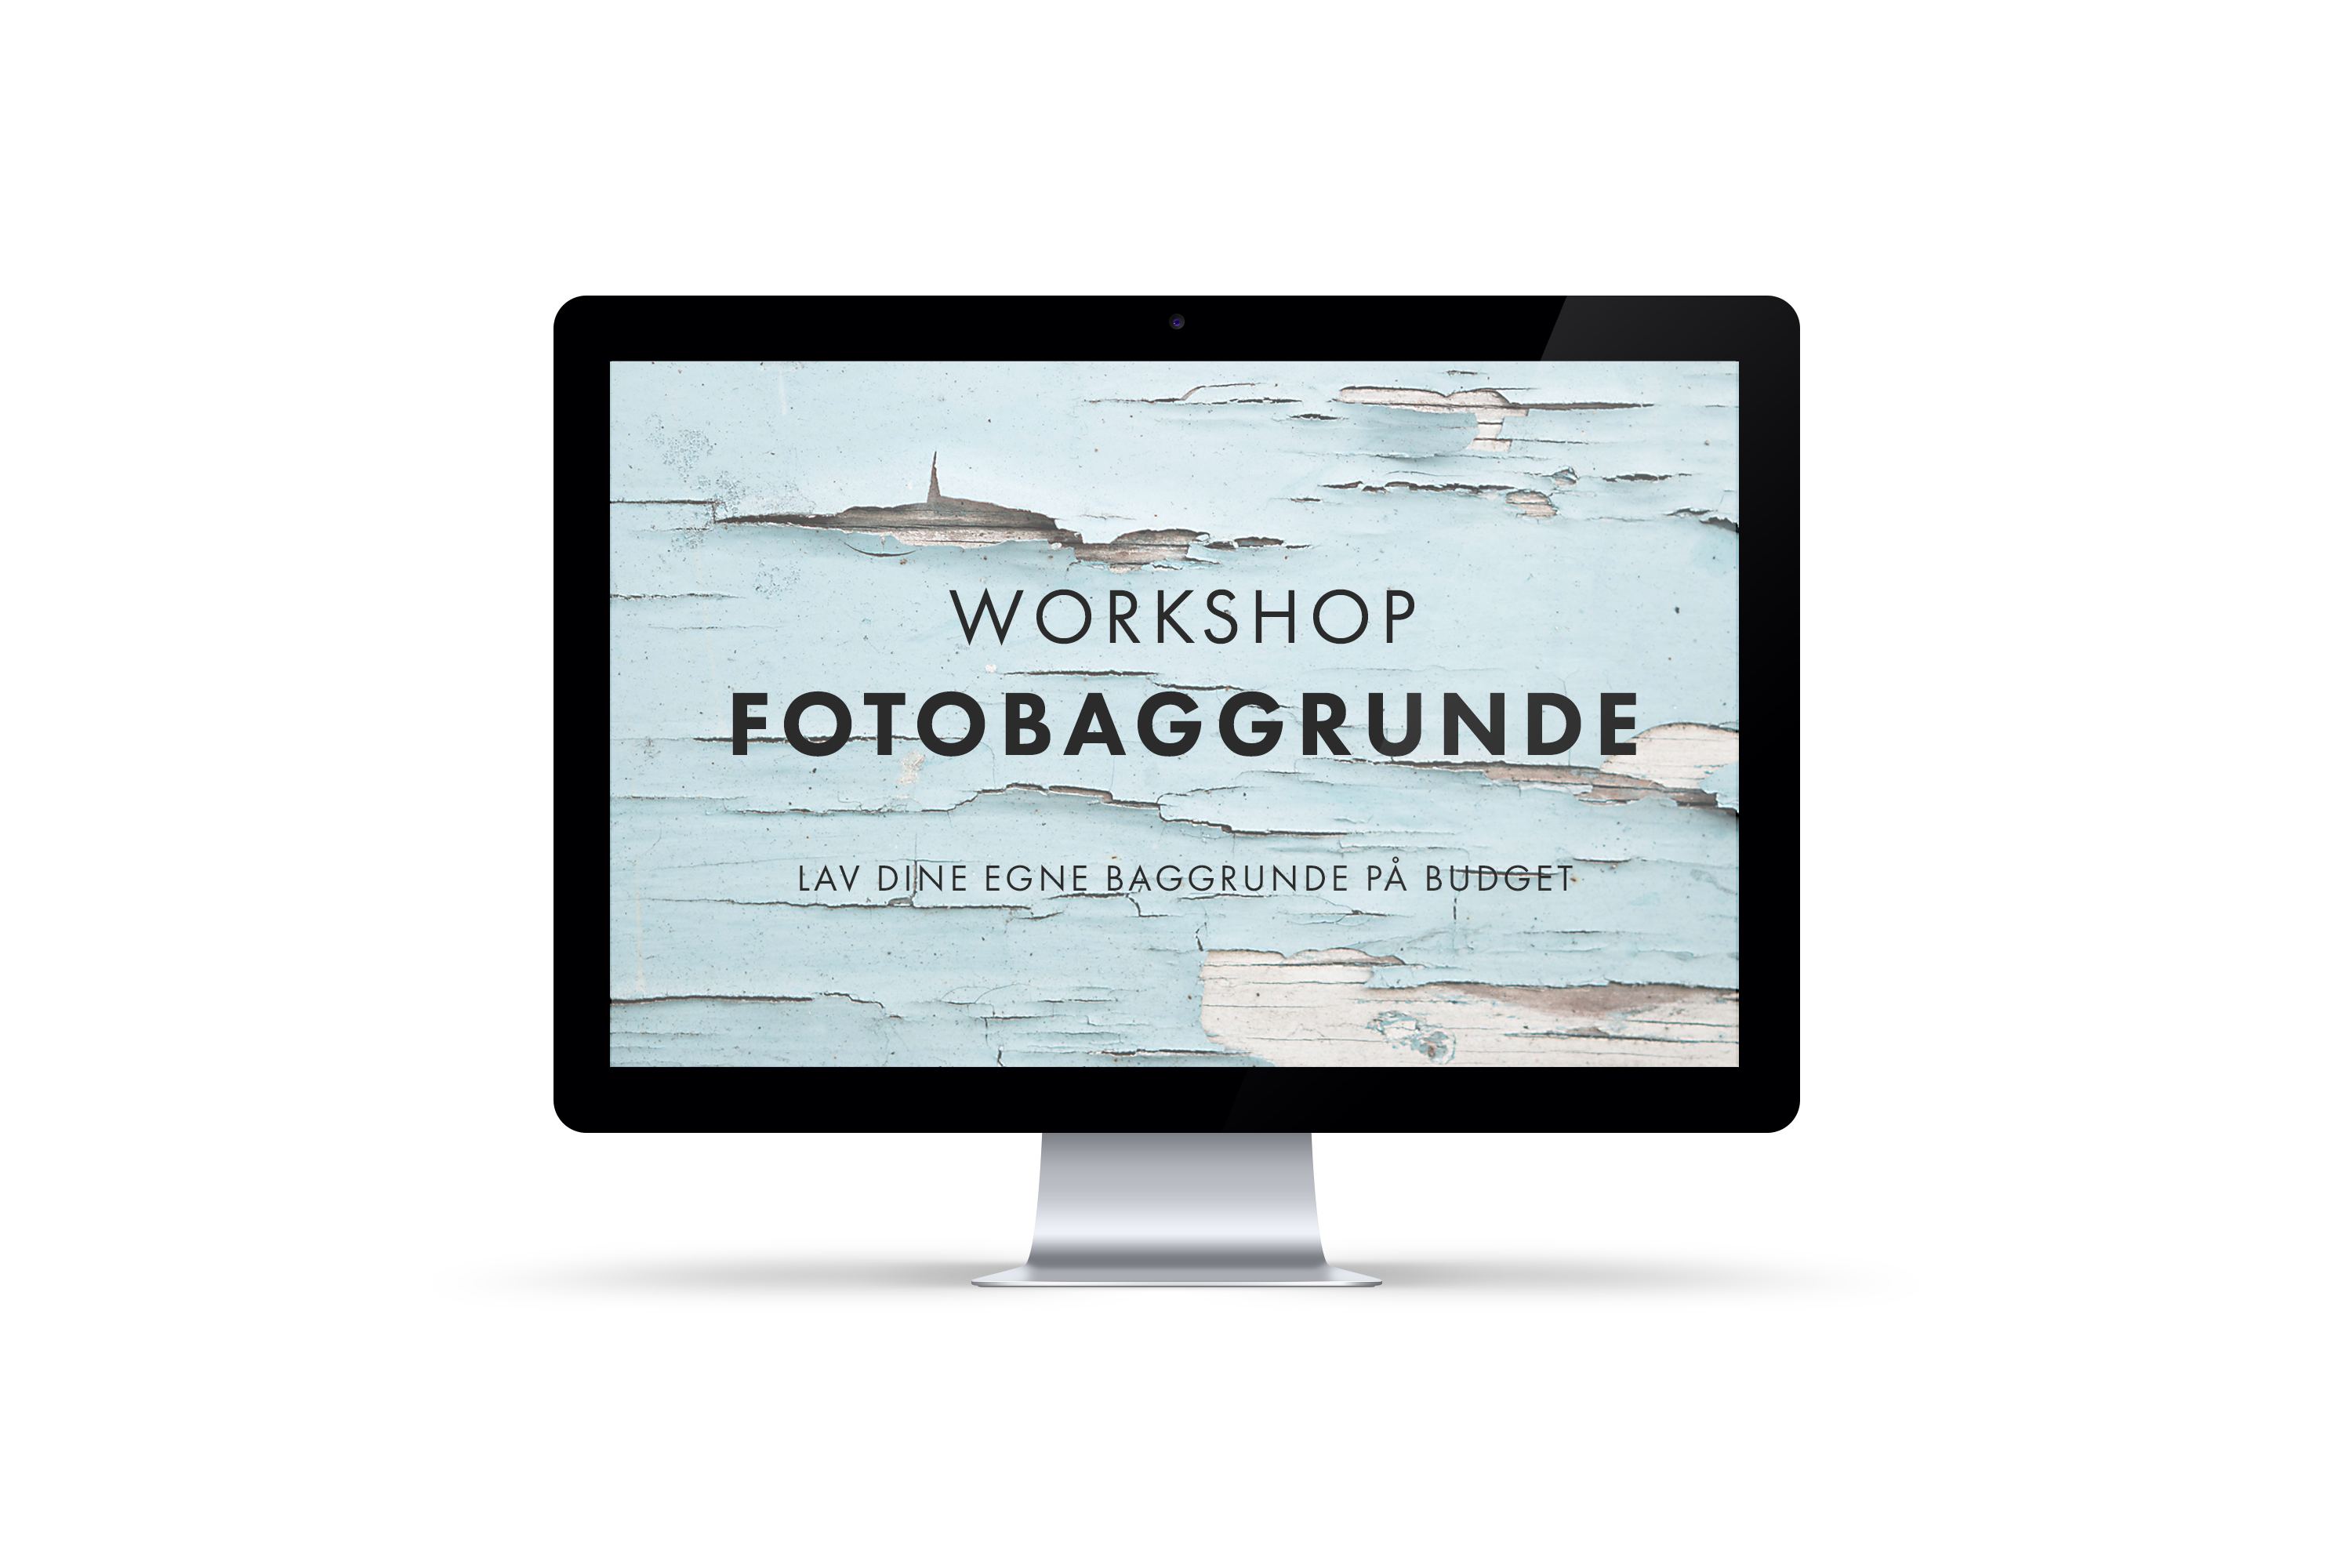 fotobaggrund workshop